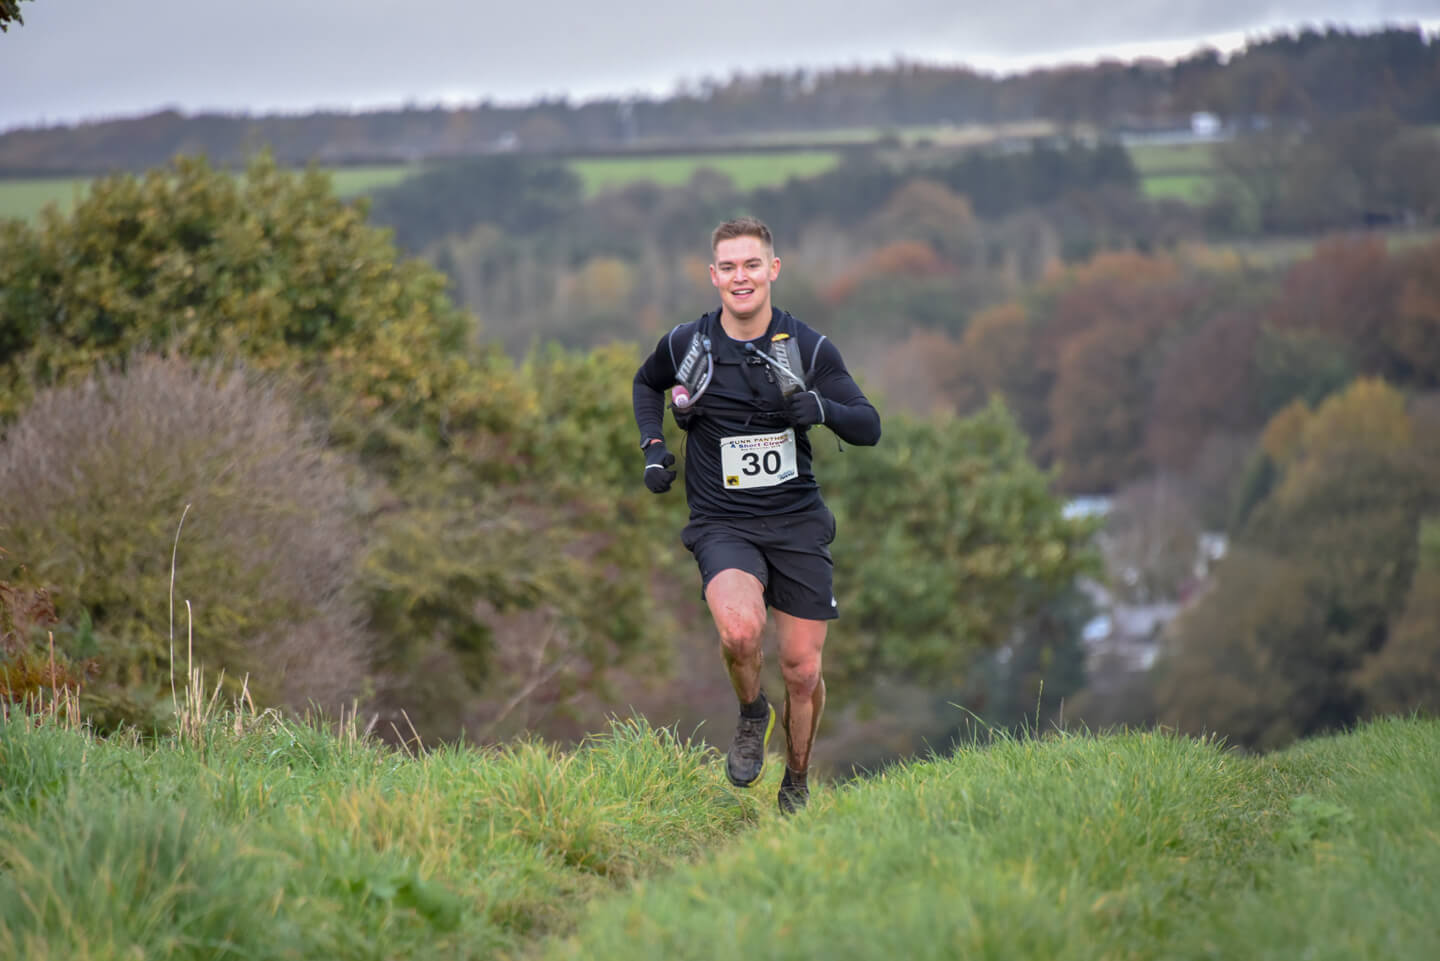 Young man running up to the brow of a hill during an ultramarathon race.